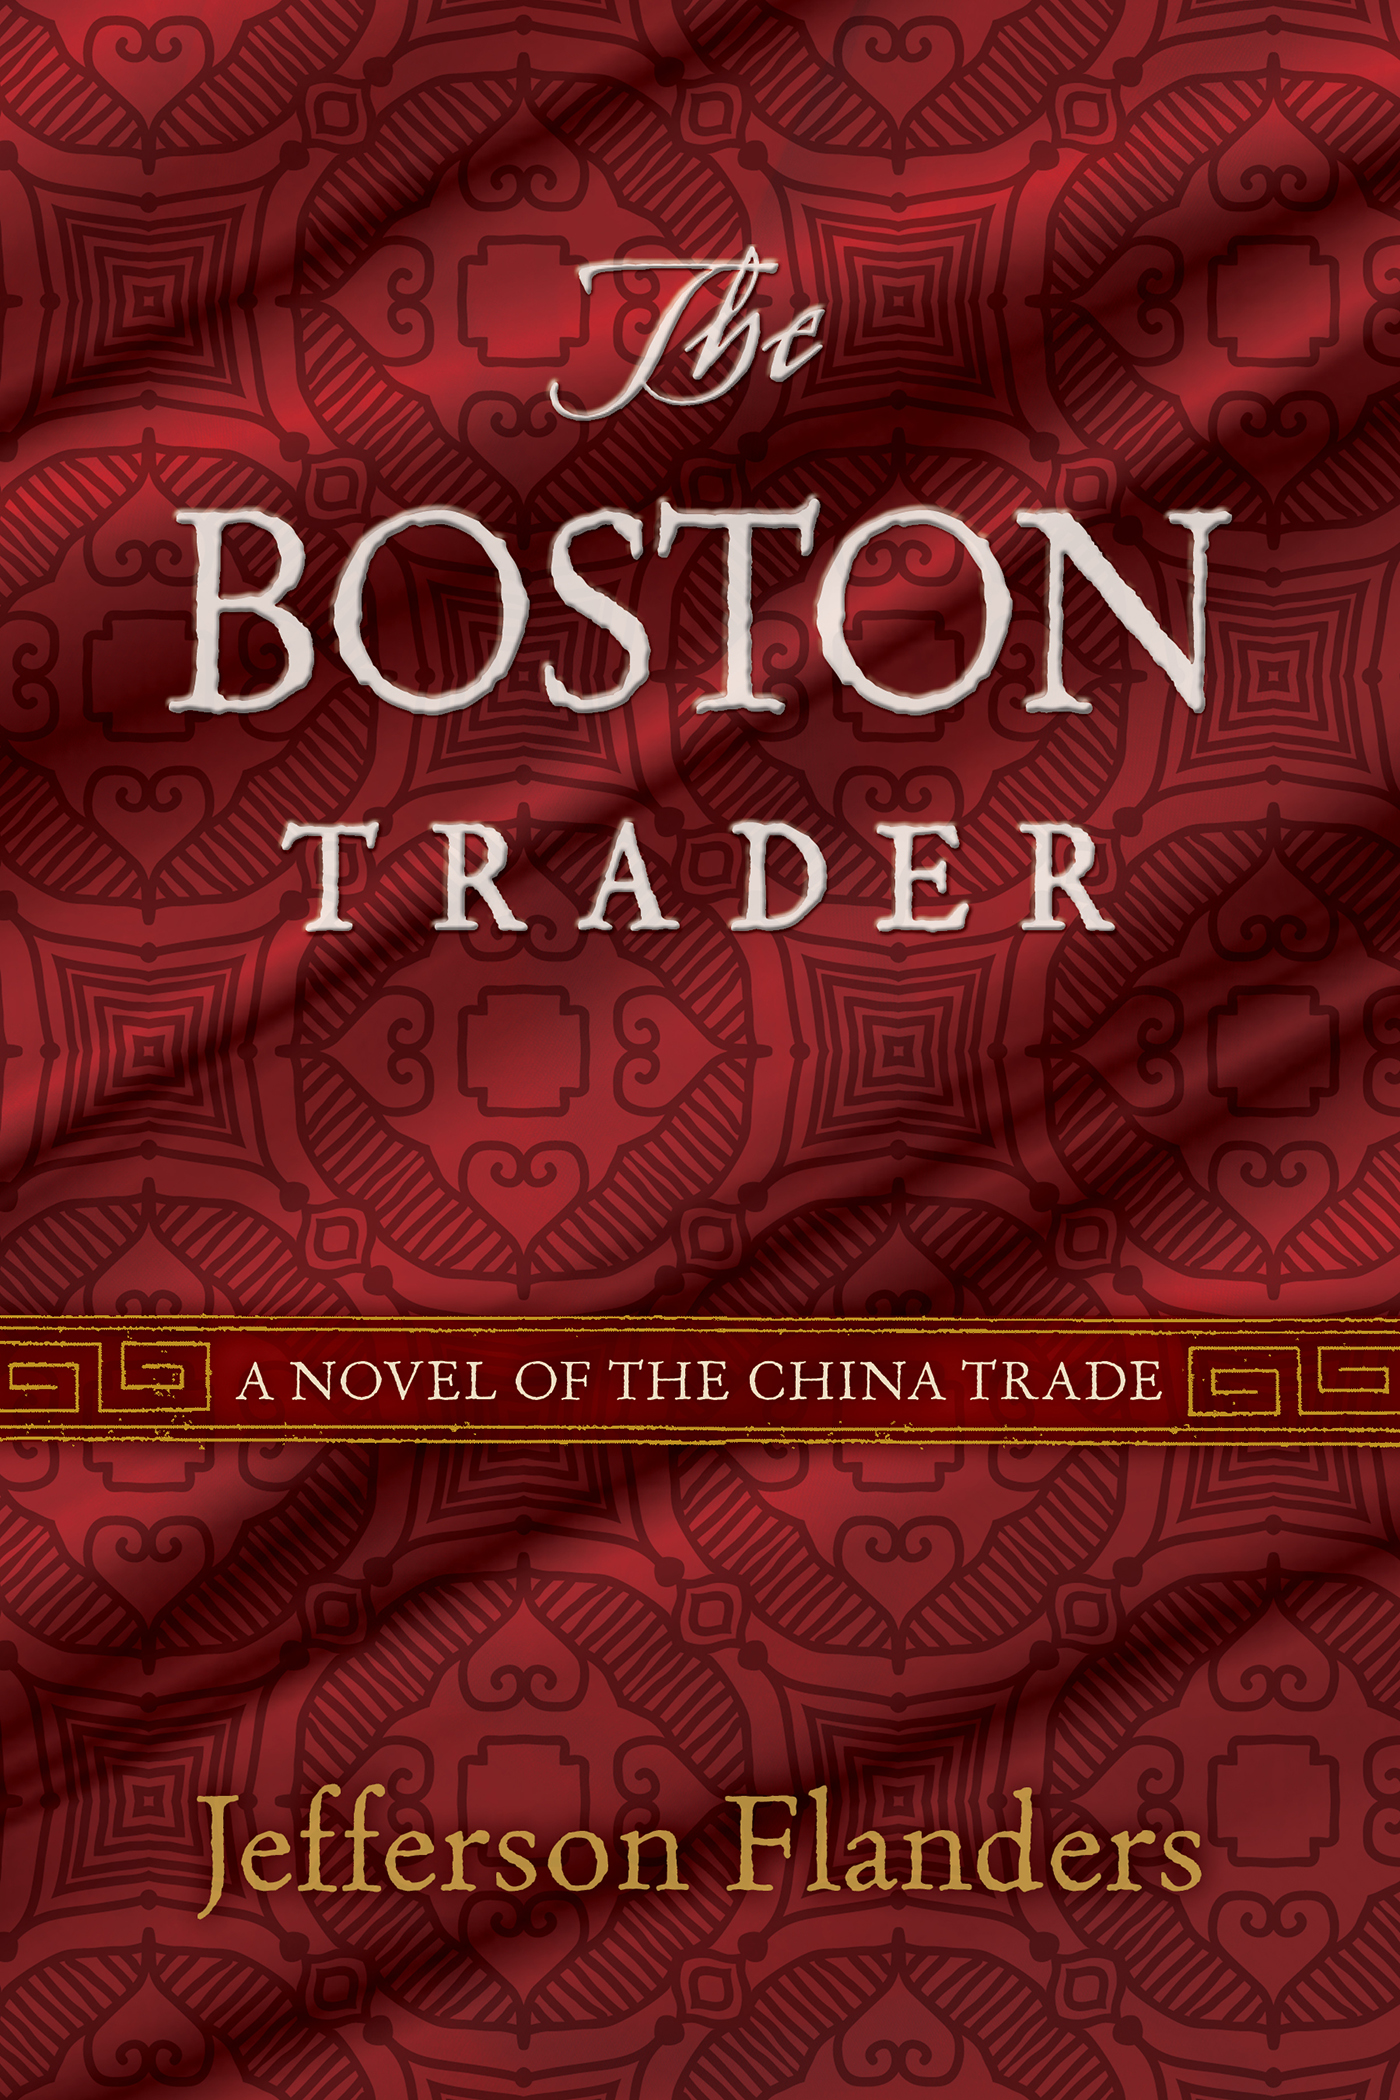 The Boston Trader